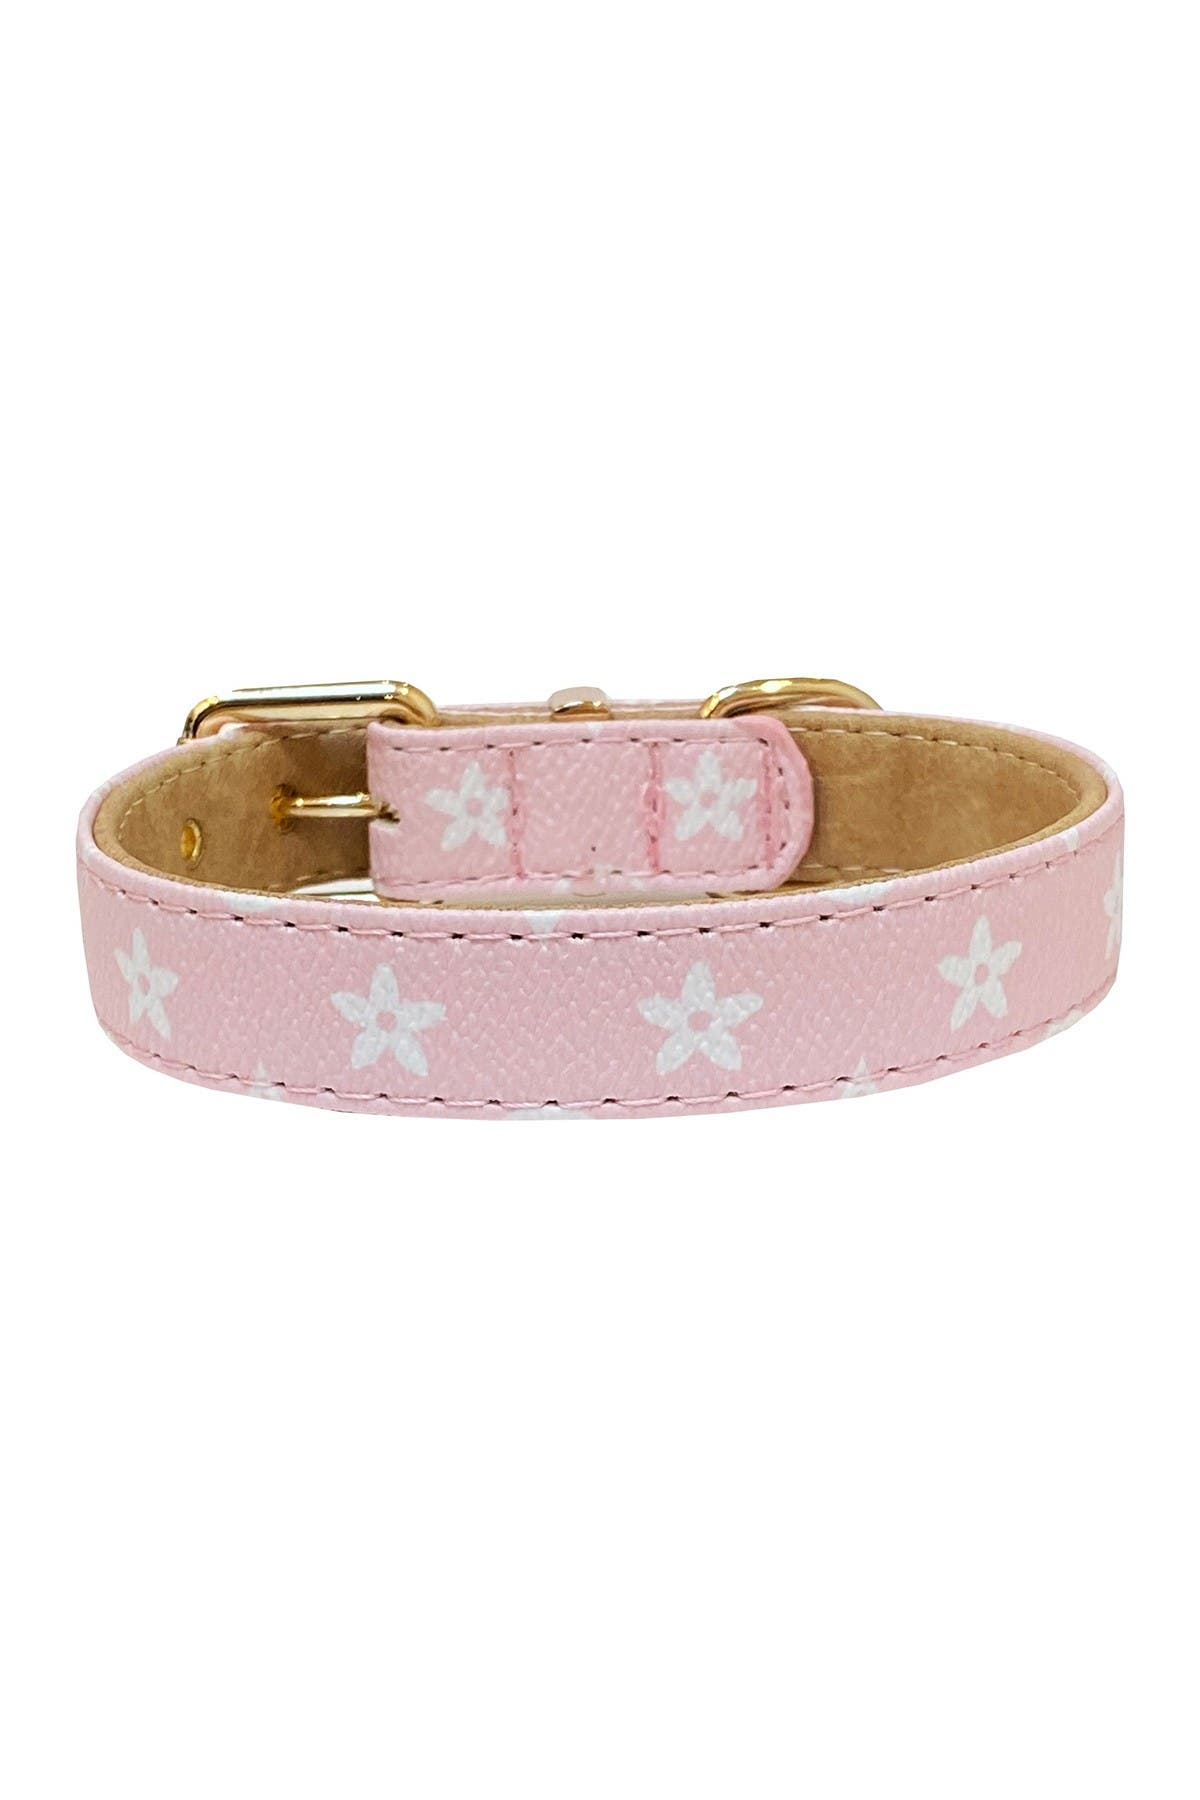 Image of Dogs of Glamour Lauren Luxury Collar - Small